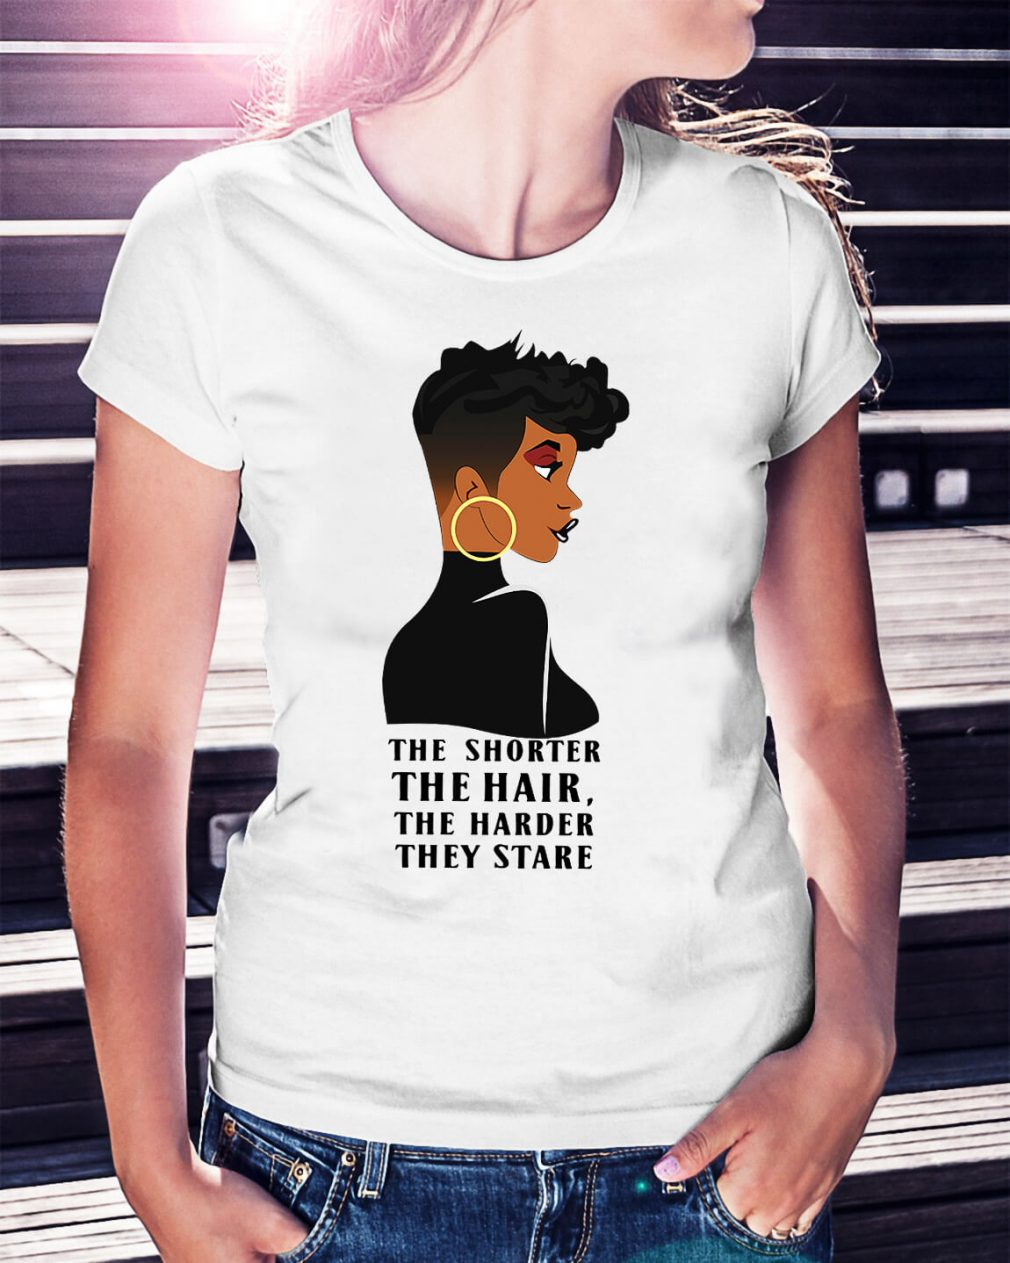 The shorter the hair the harder they stare shirt